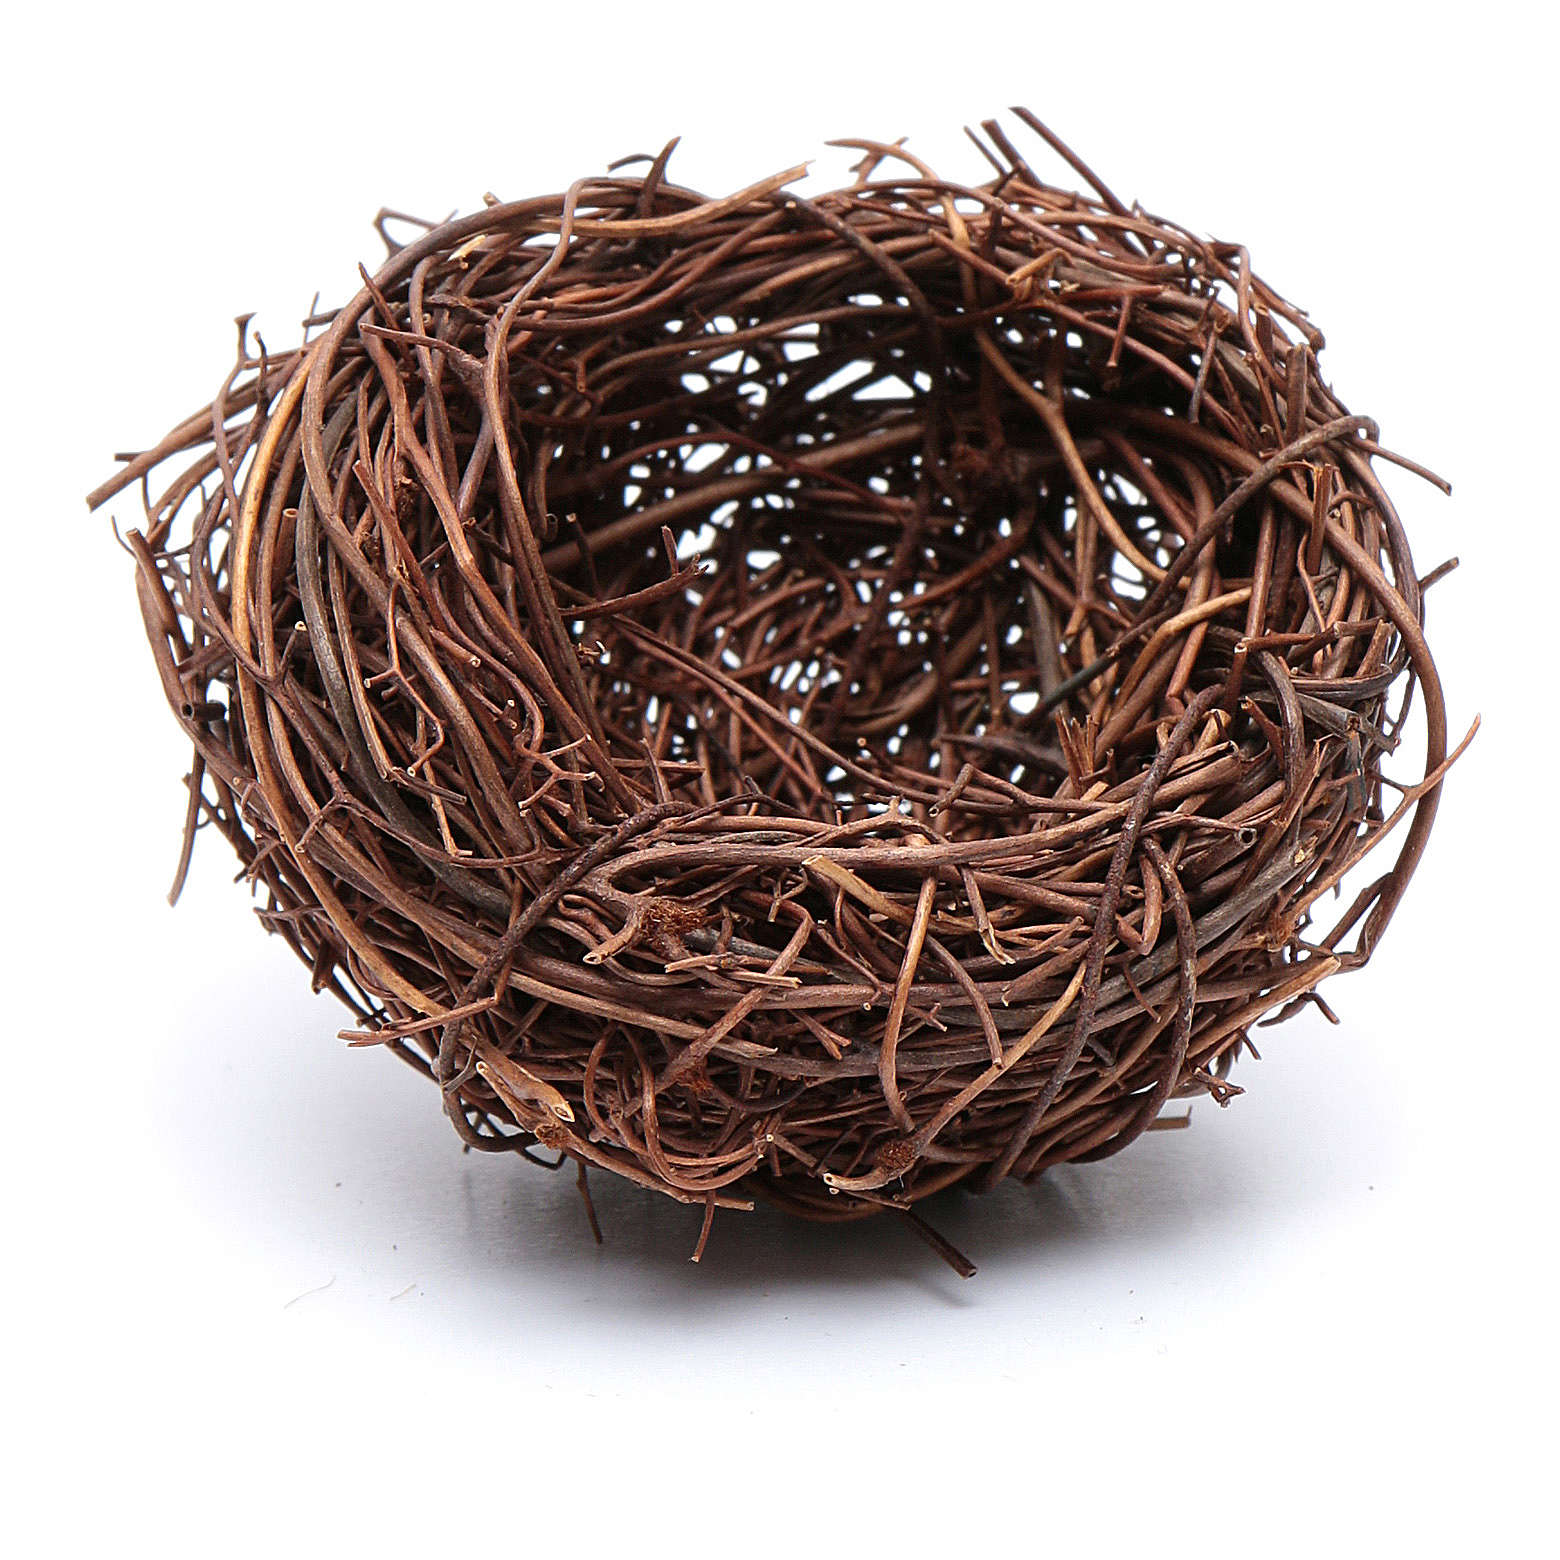 DIY nativity scene nest 4 cm diameter 3